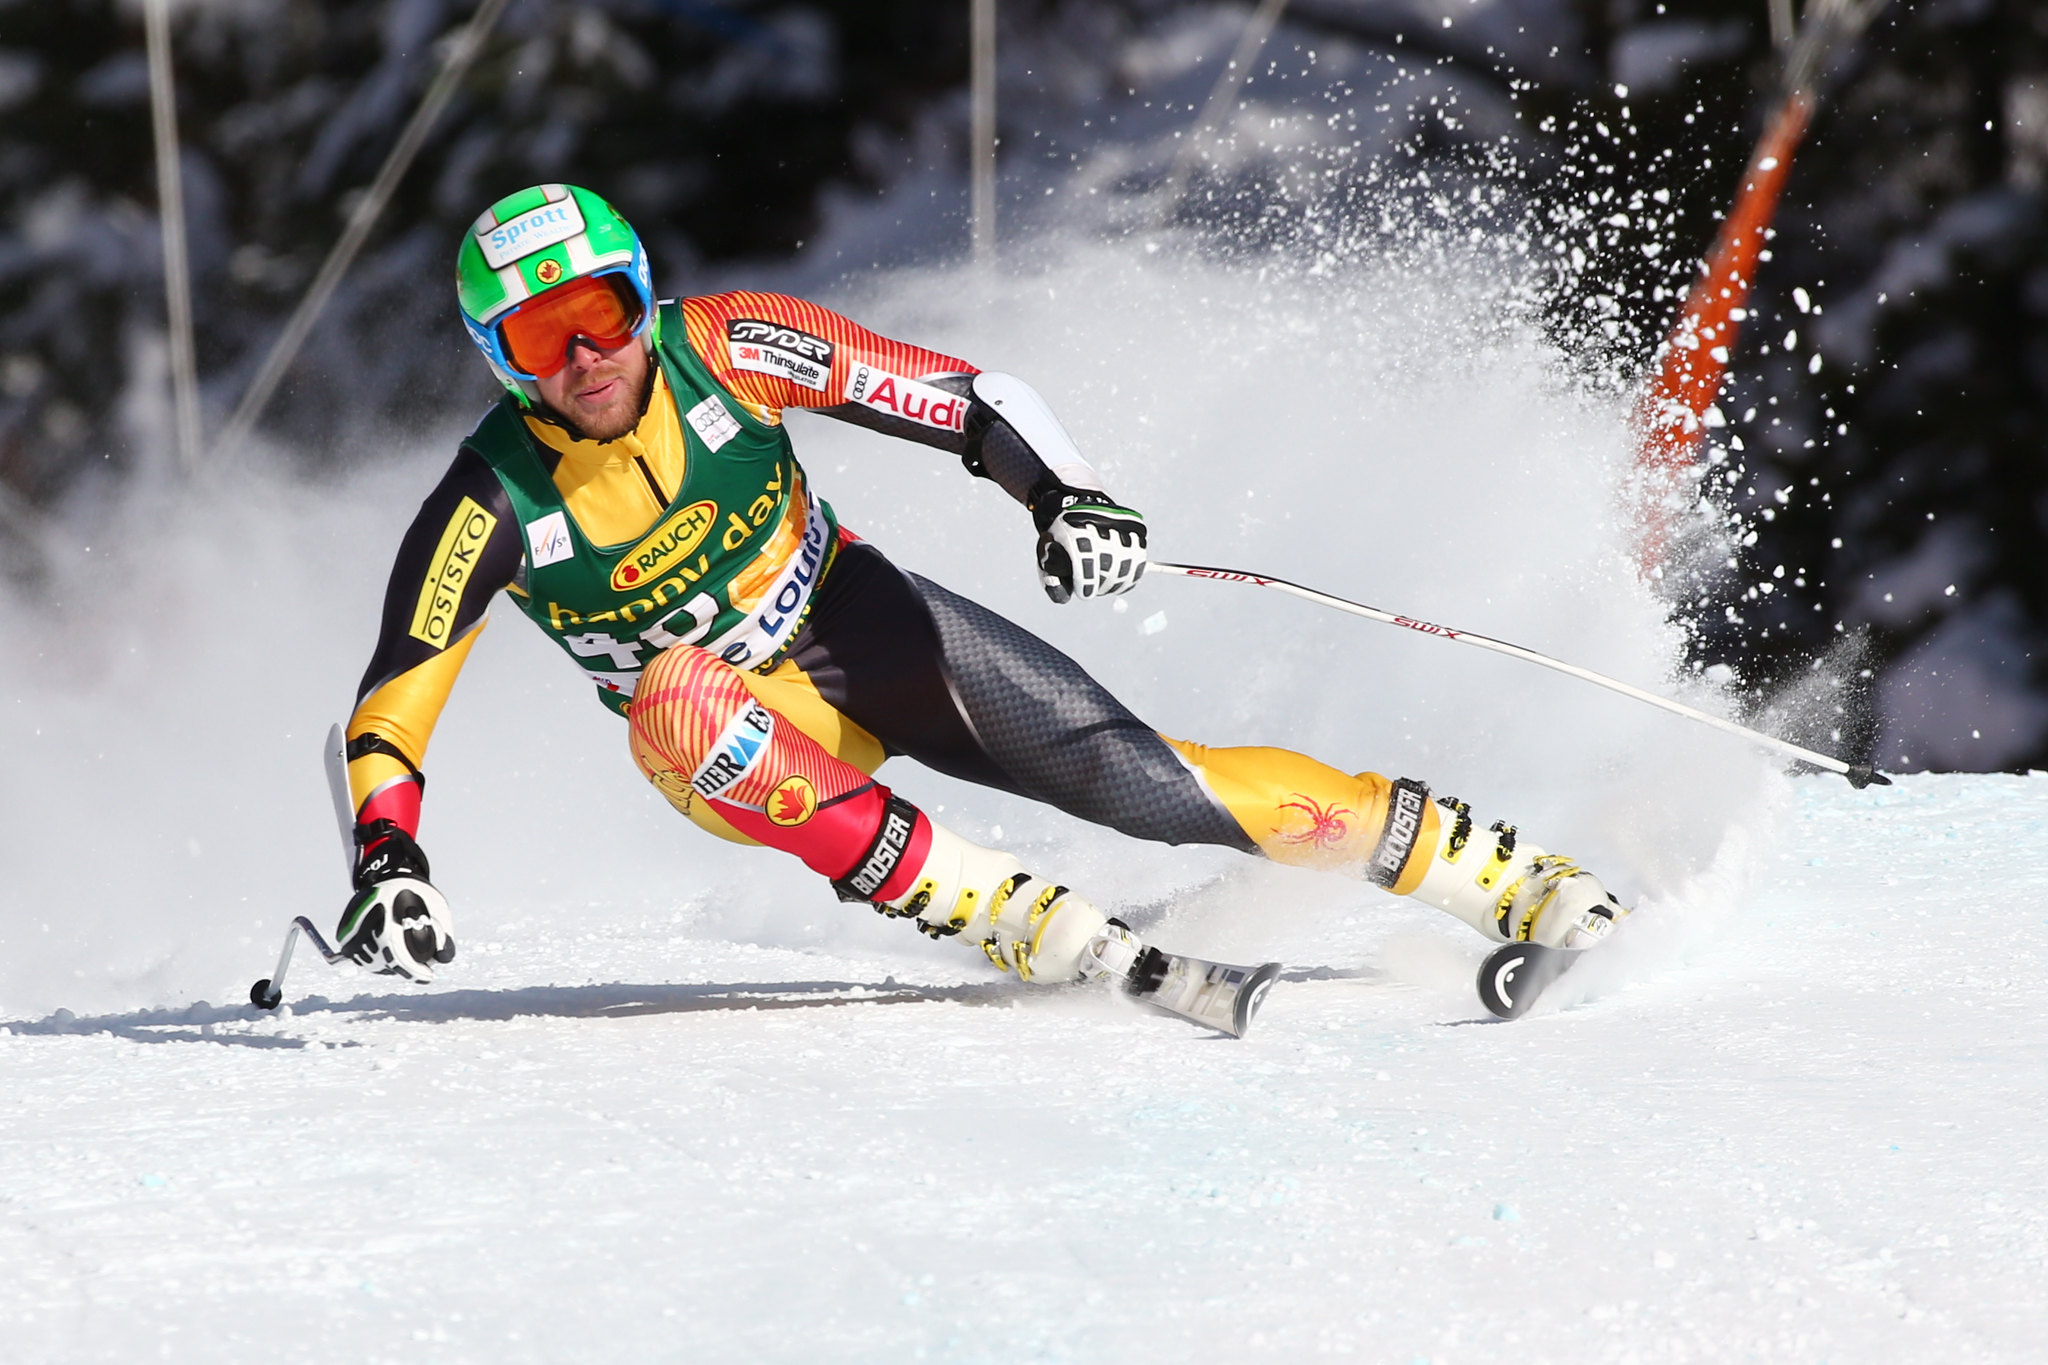 Dustin Cook in action during World Cup super-G in Lake Louise.